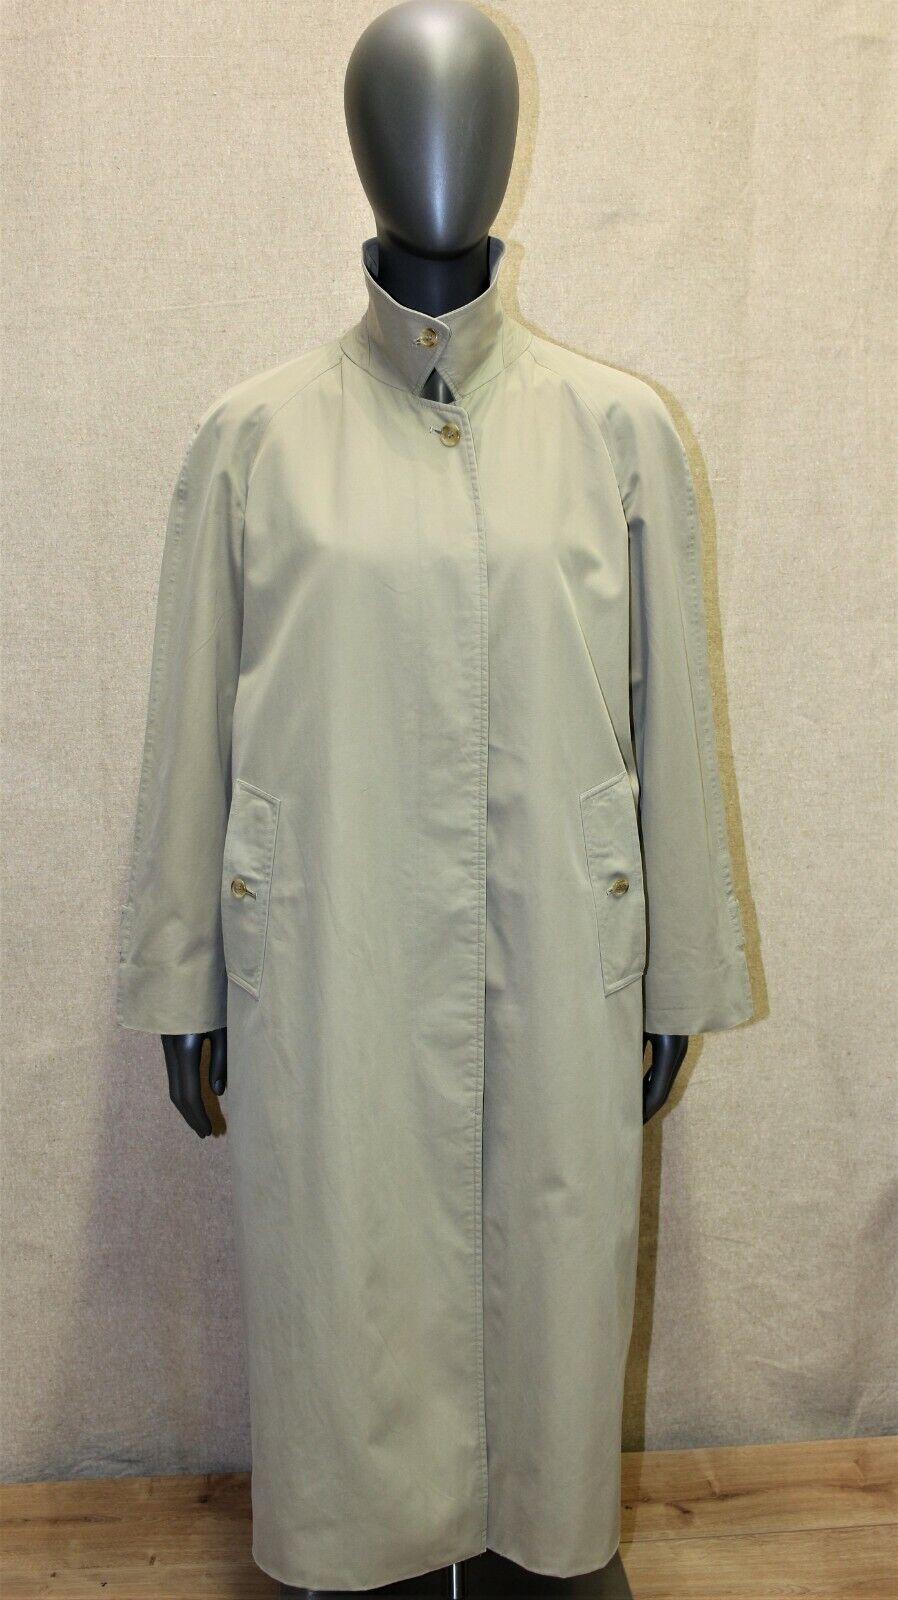 Trench burberry's raglan vintage 70 100% coton beige 12reg 40 fr made in england